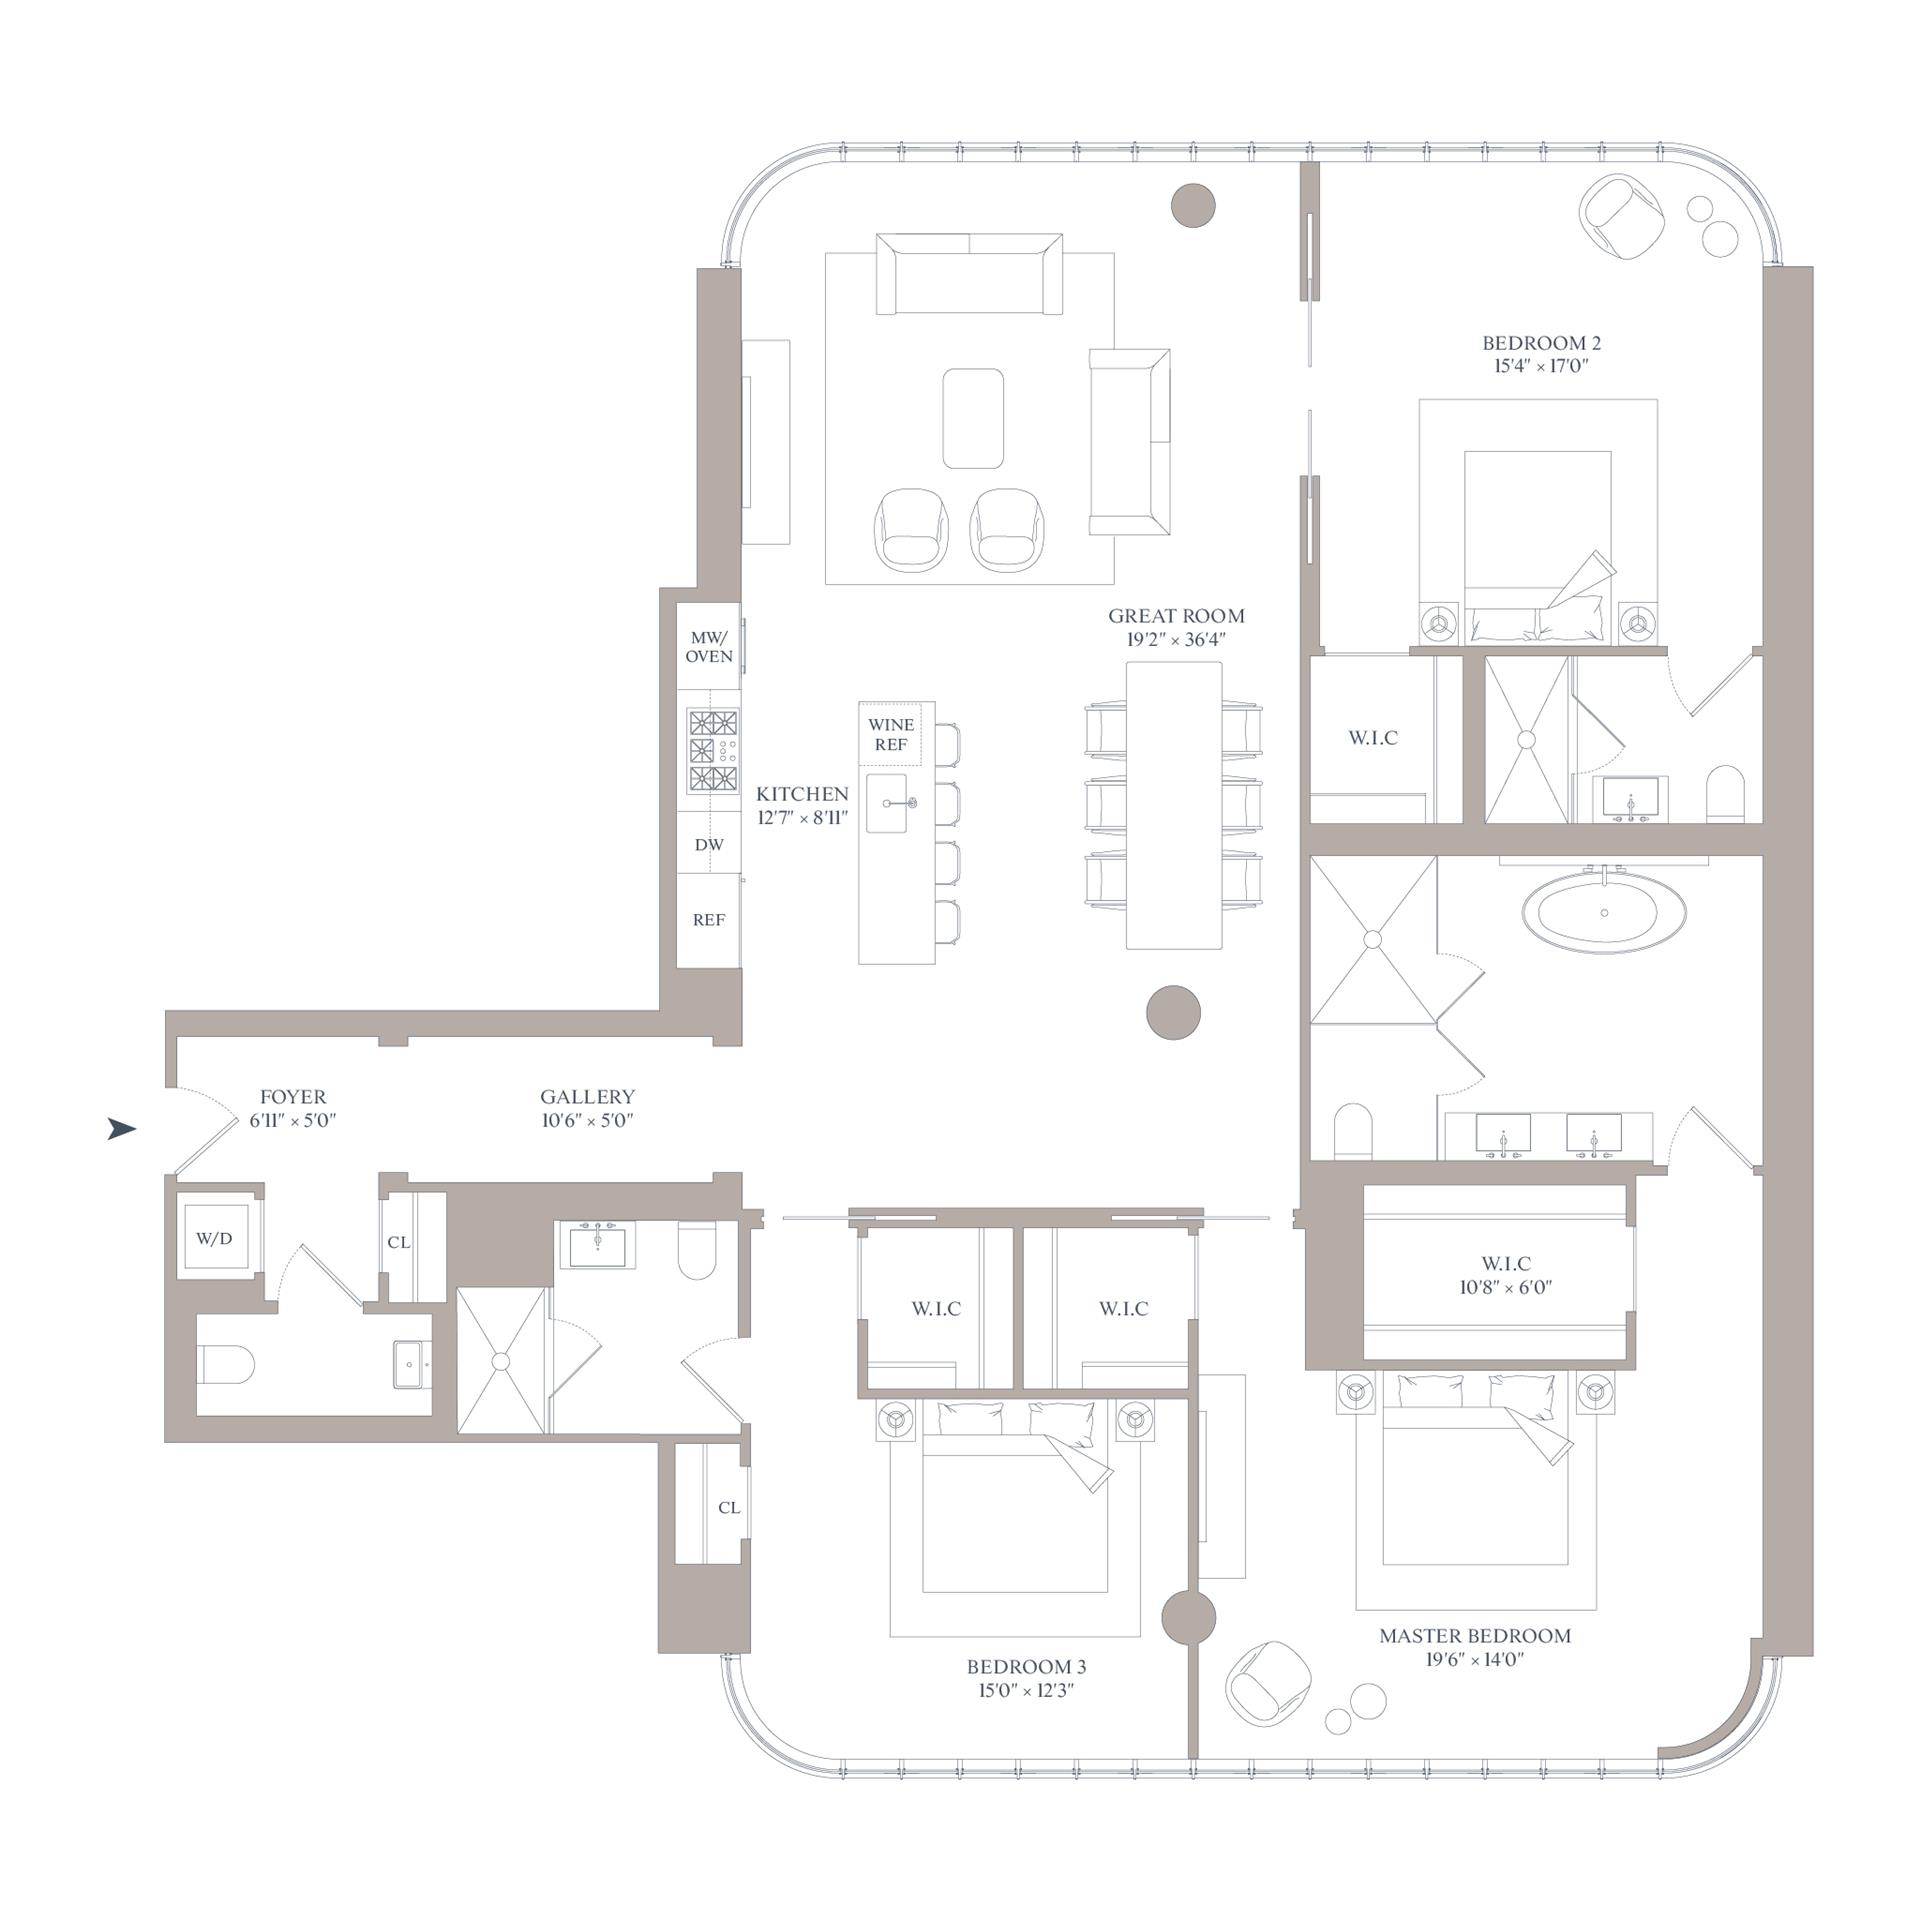 Floor plan of 565 Broome St, N8E - SoHo - Nolita, New York